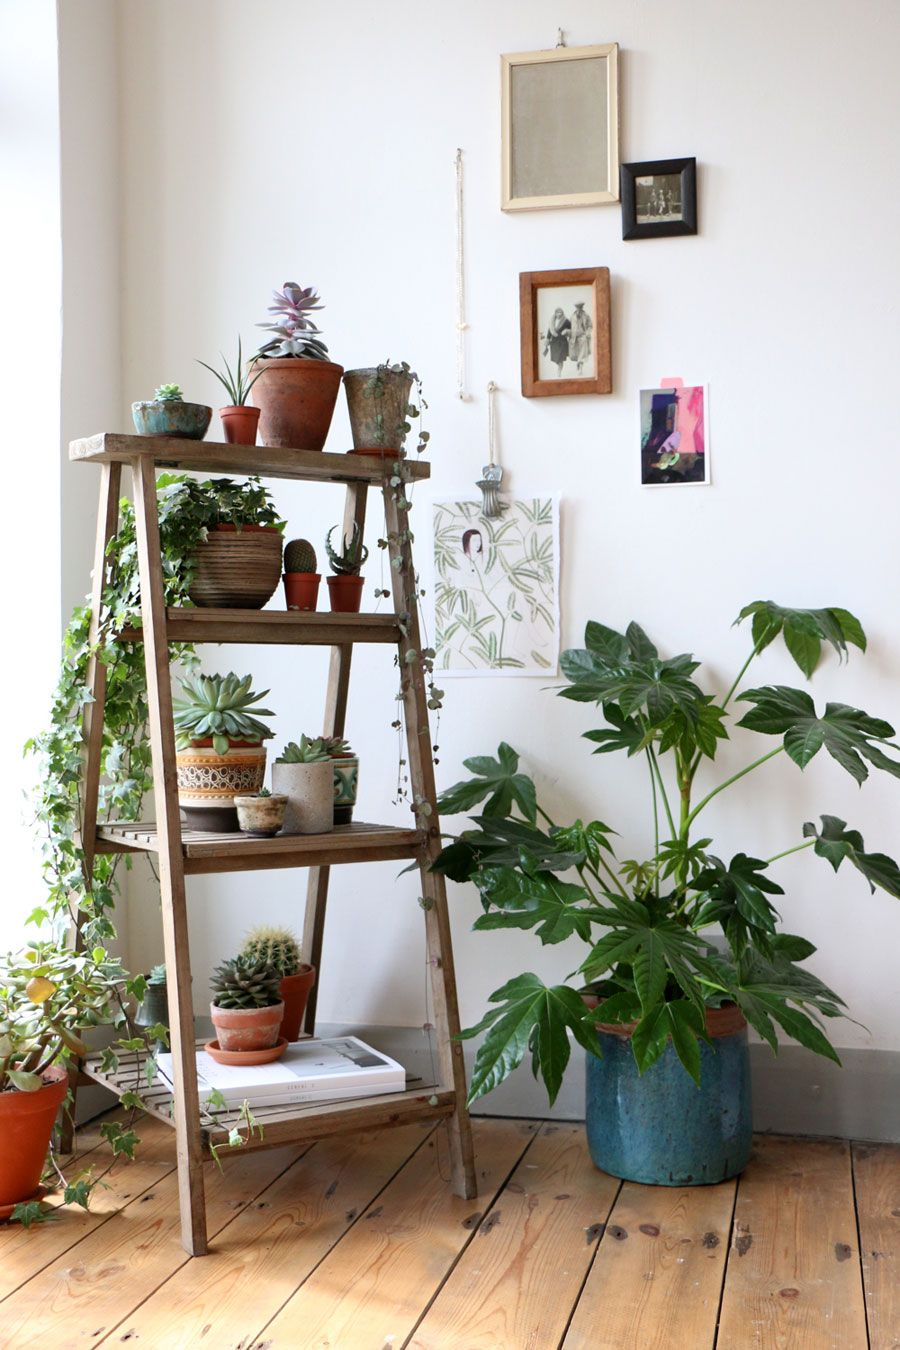 How to decorate with plants - latest HomeGoods project - Four Generations One Roof